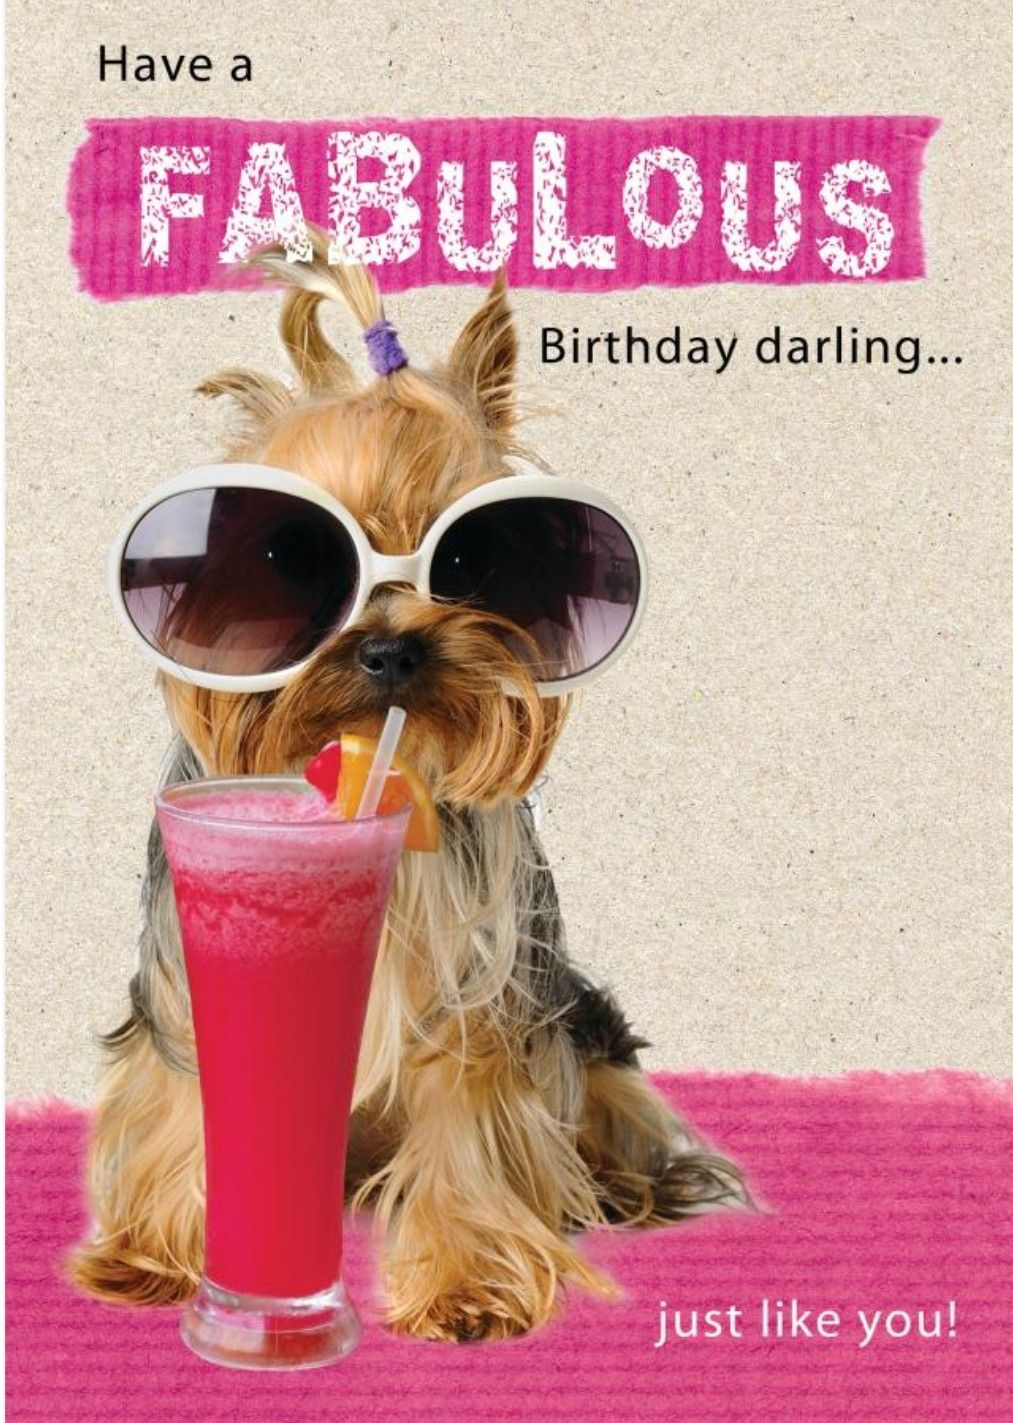 have a fabulous birthday darling thortful com birthday cards